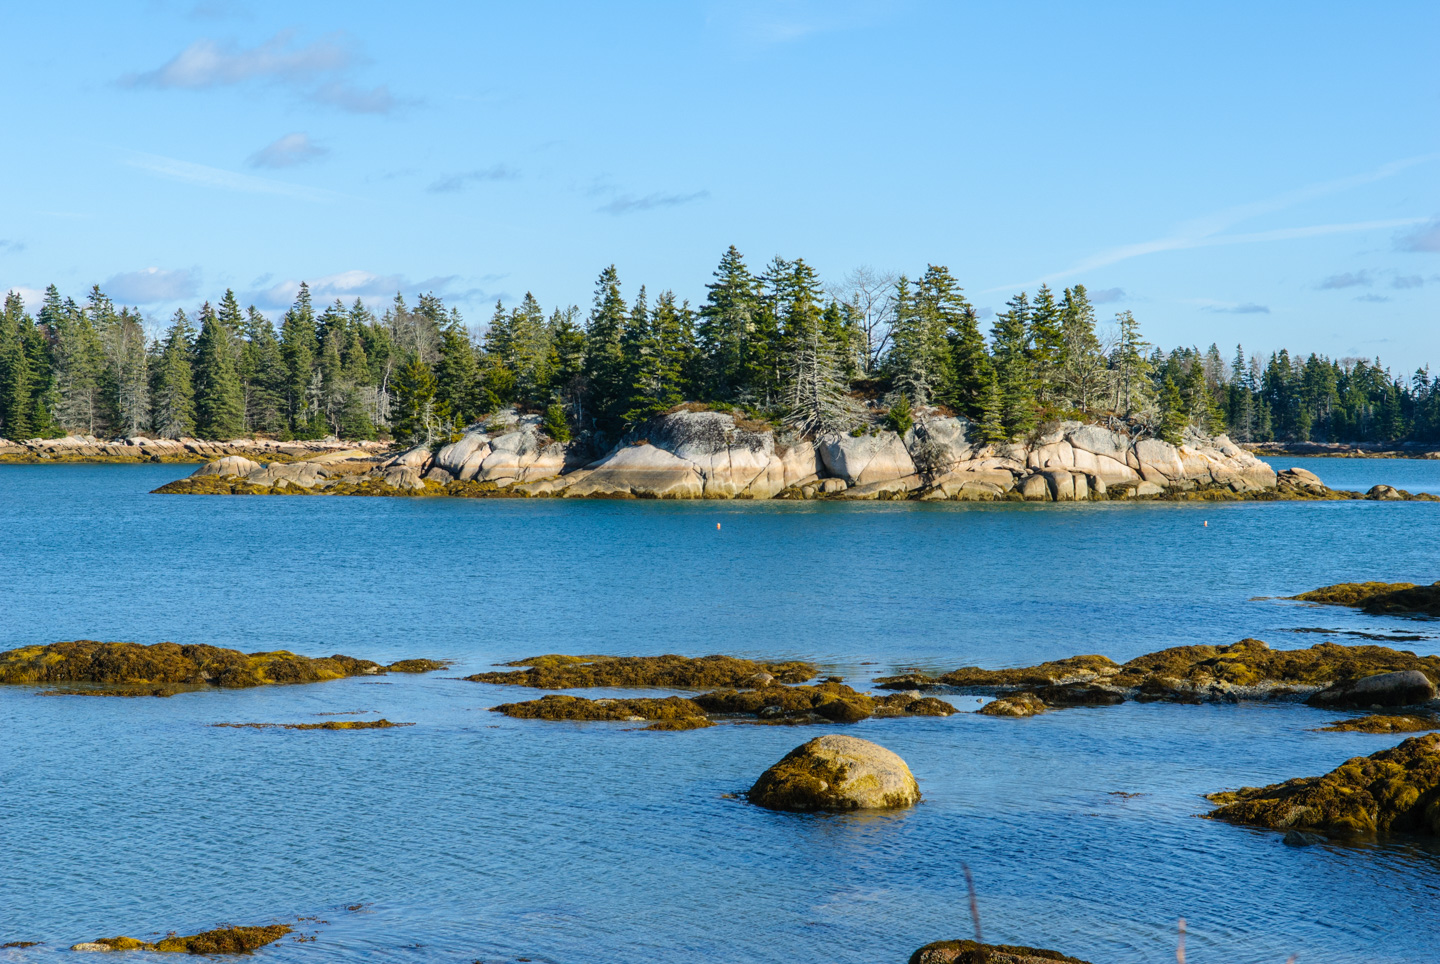 looking at land across water, taken at Edgar Tennis Preserve on Deer Isle